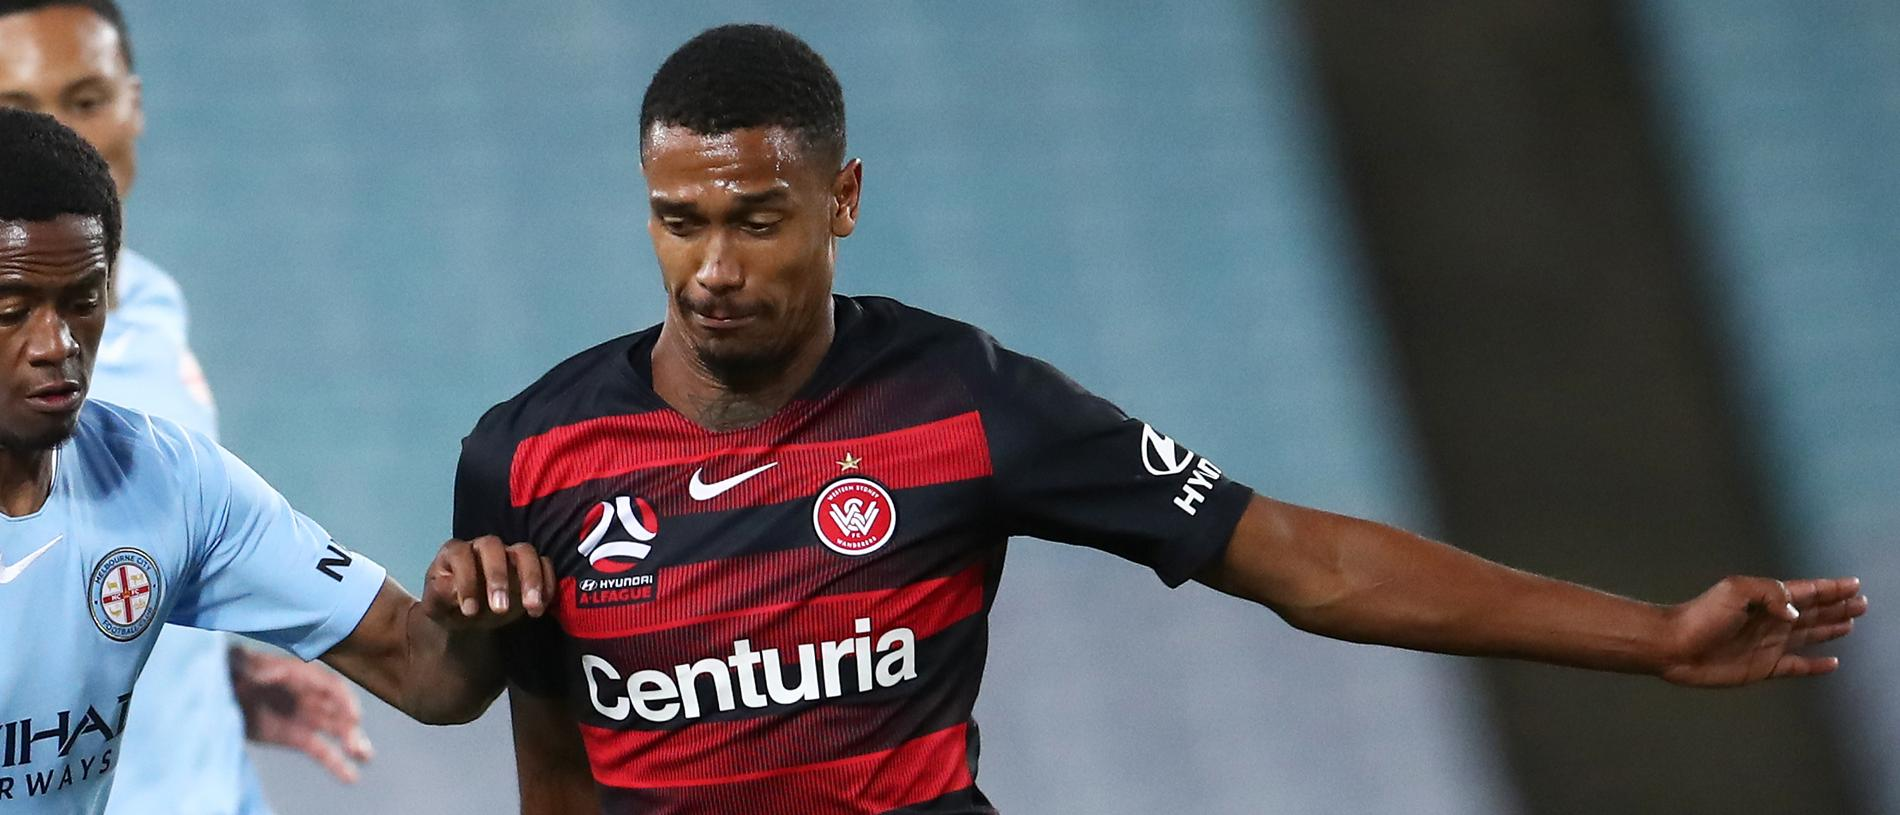 Shayon Harrison of Melbourne City competes with Rashid Mahazi of the Wanderers during the Round 23 A-League match between the Western Sydney Wanderers and Melbourne City FC at ANZ Stadium, Sydney, Saturday March 30, 2019. (AAP Image/Brendon Thorne) NO ARCHIVING, EDITORIAL USE ONLY